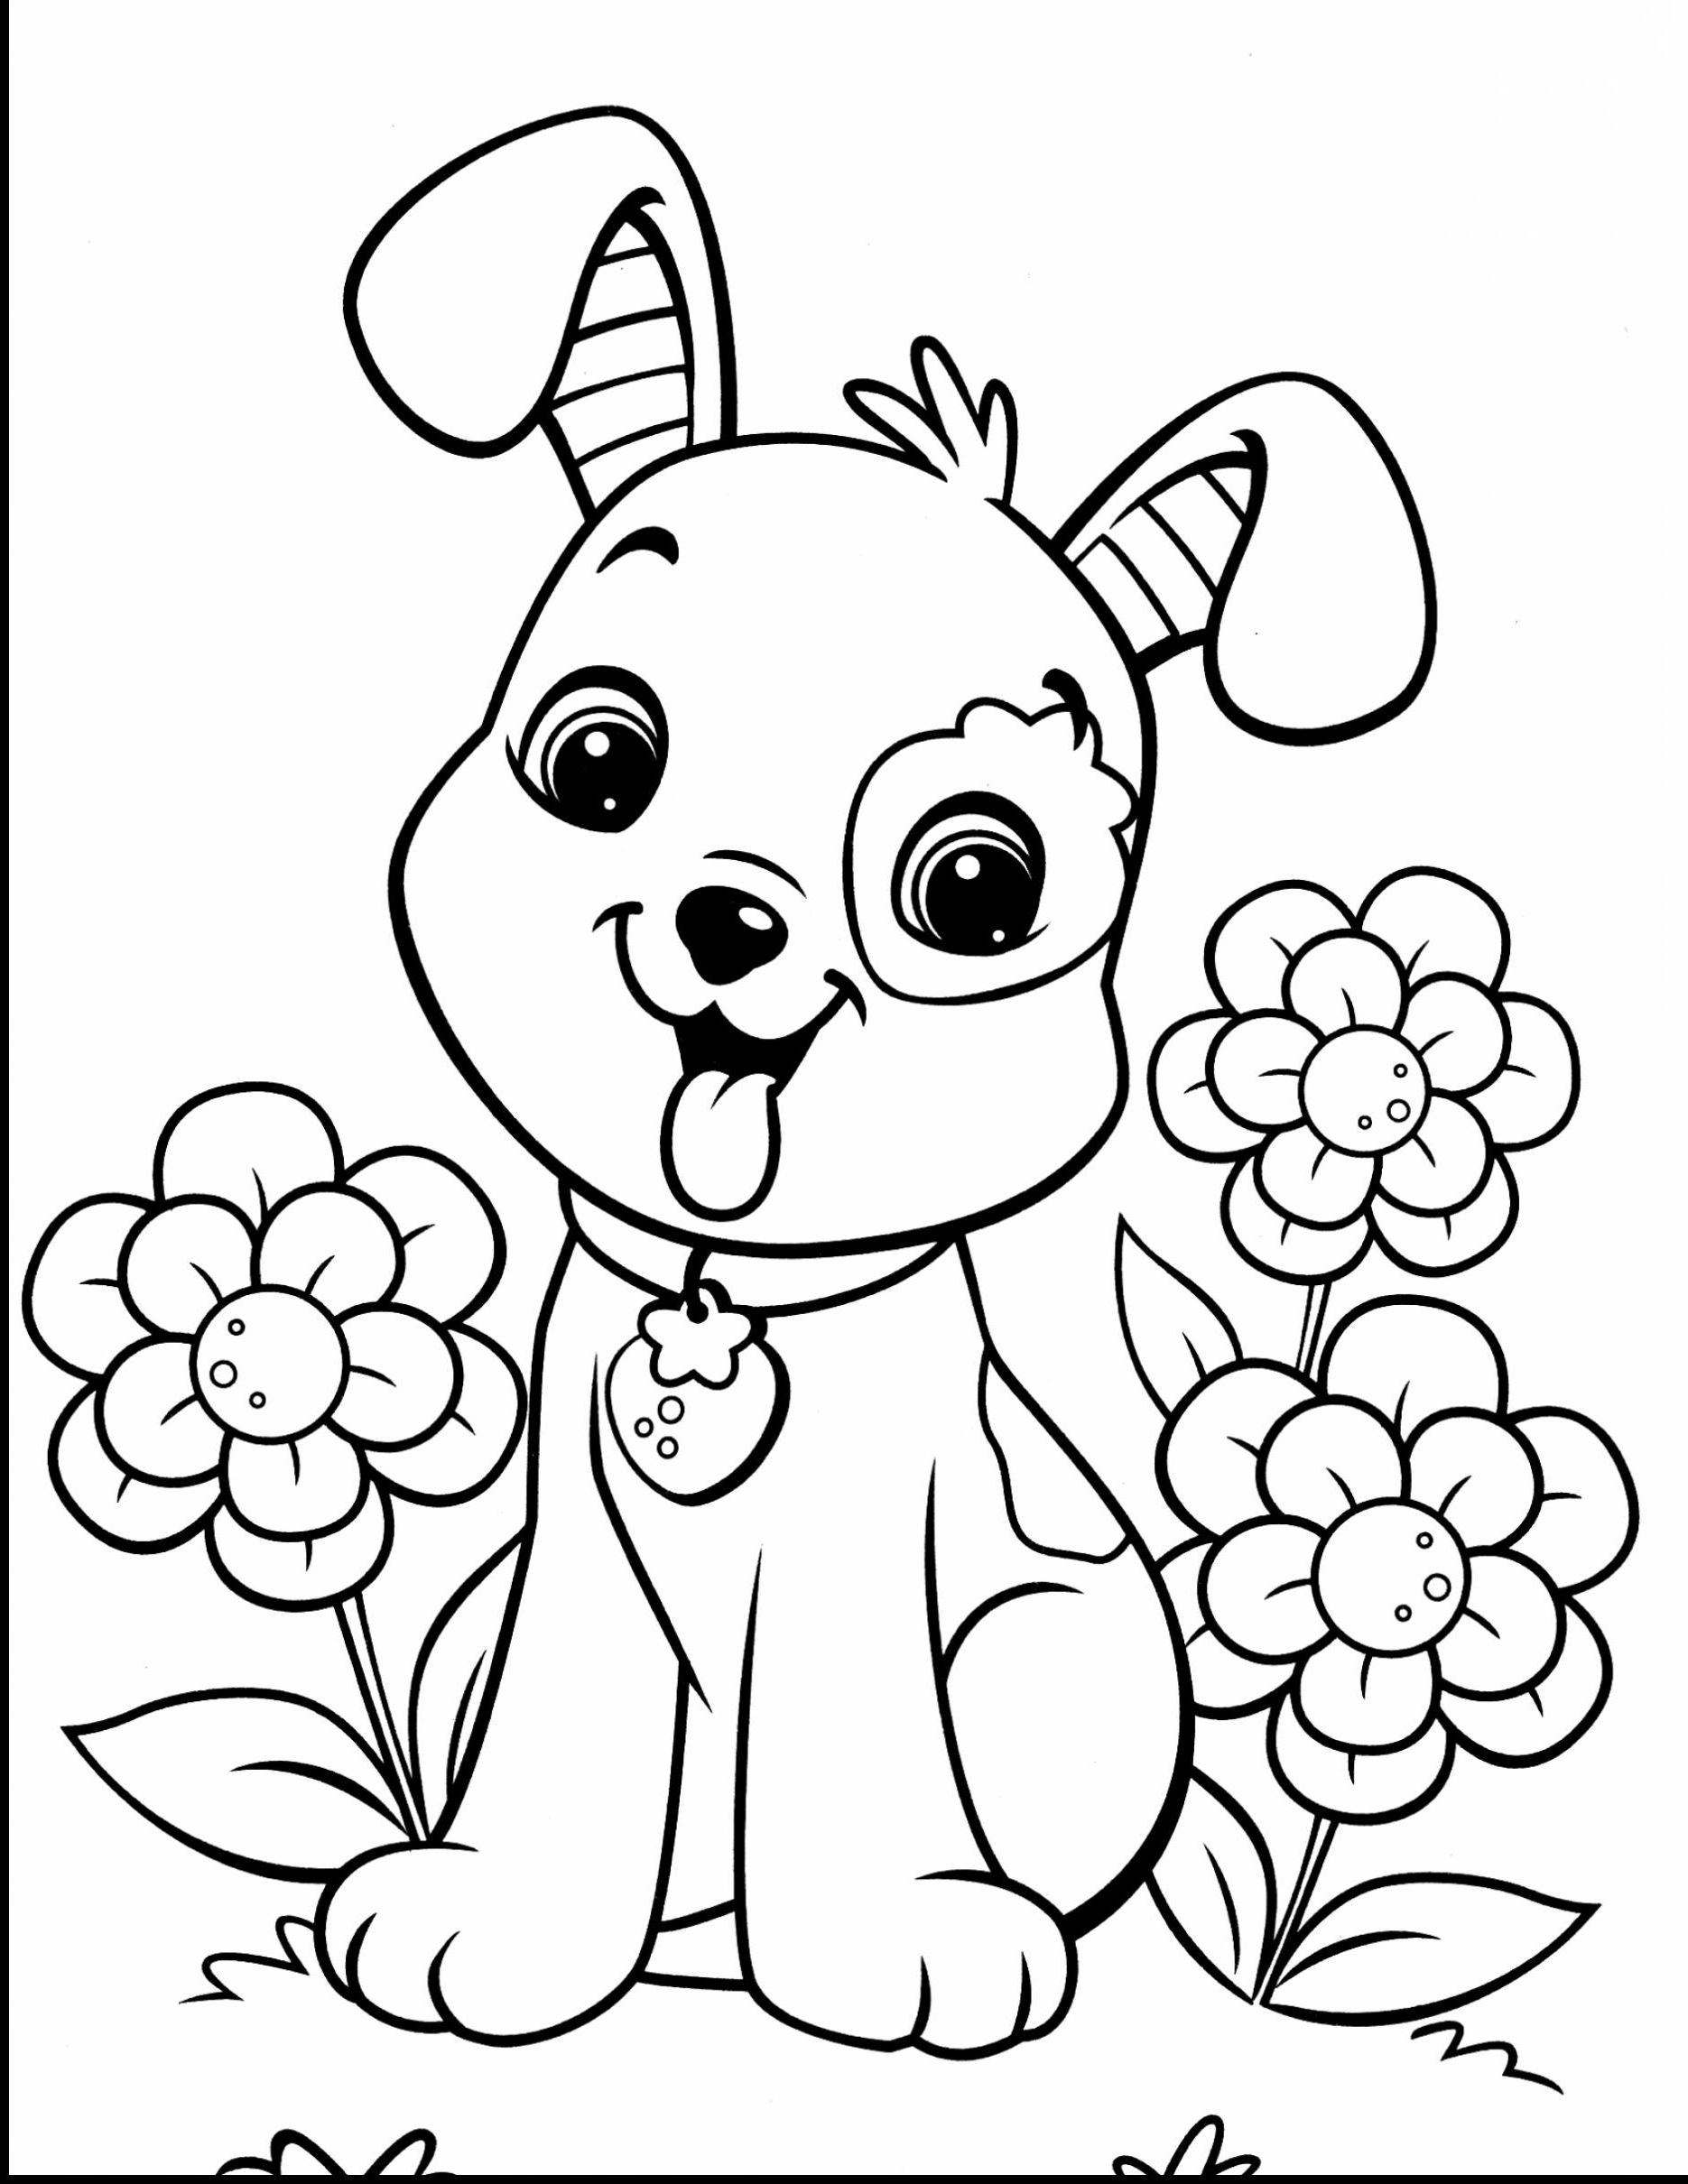 coloring dog for kids puppy cute puppy dog coloring pages for kids learning dog coloring for kids